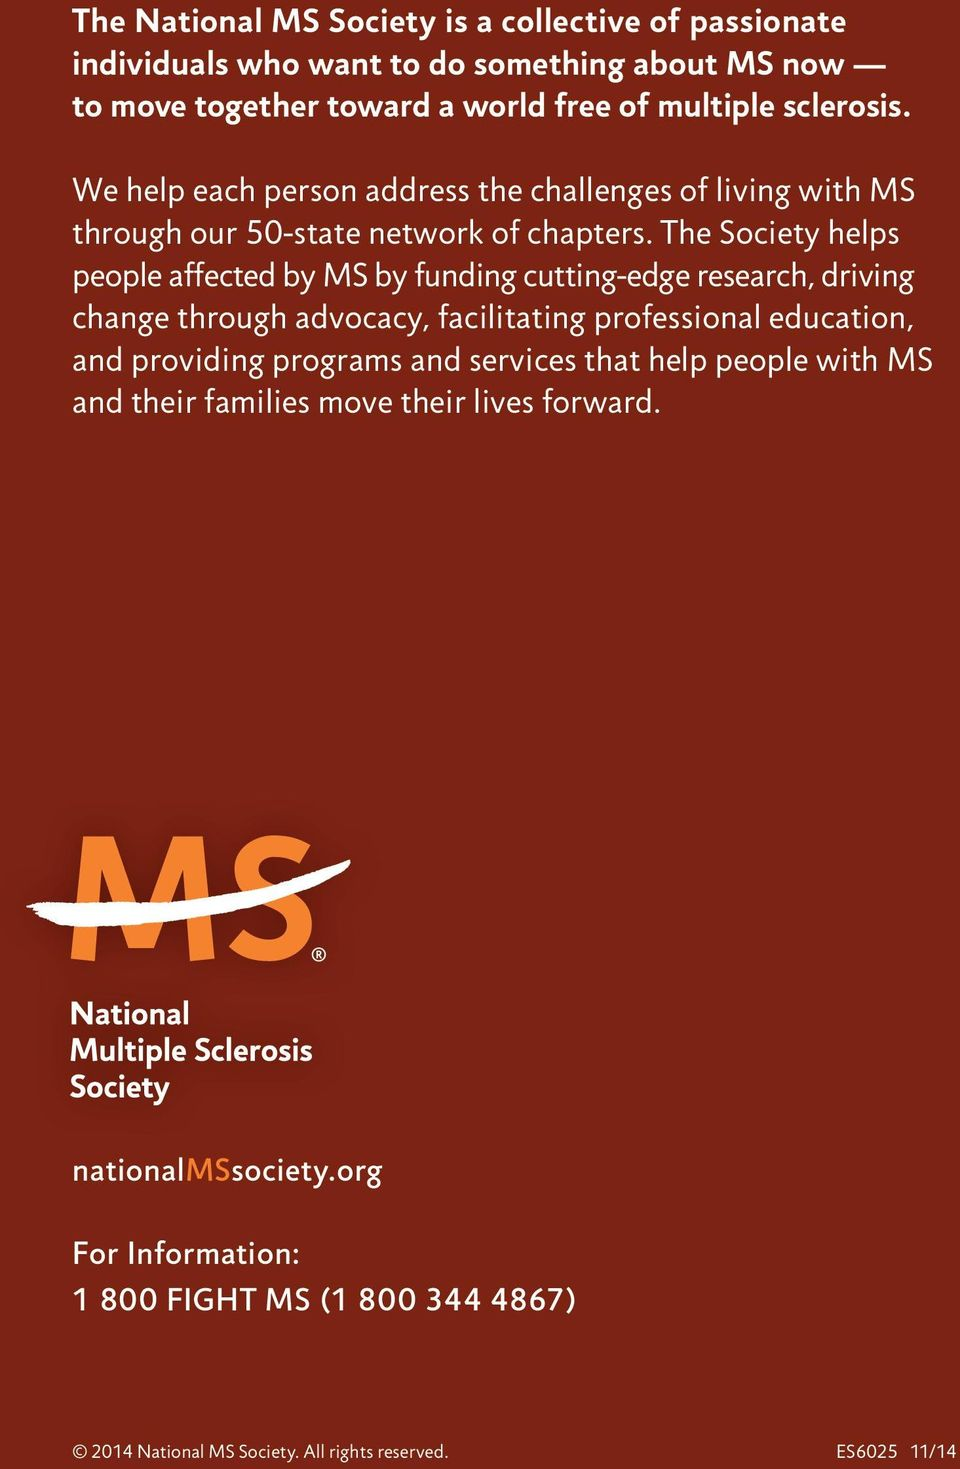 The Society helps people affected by MS by funding cutting-edge research, driving change through advocacy, facilitating professional education, and providing programs and